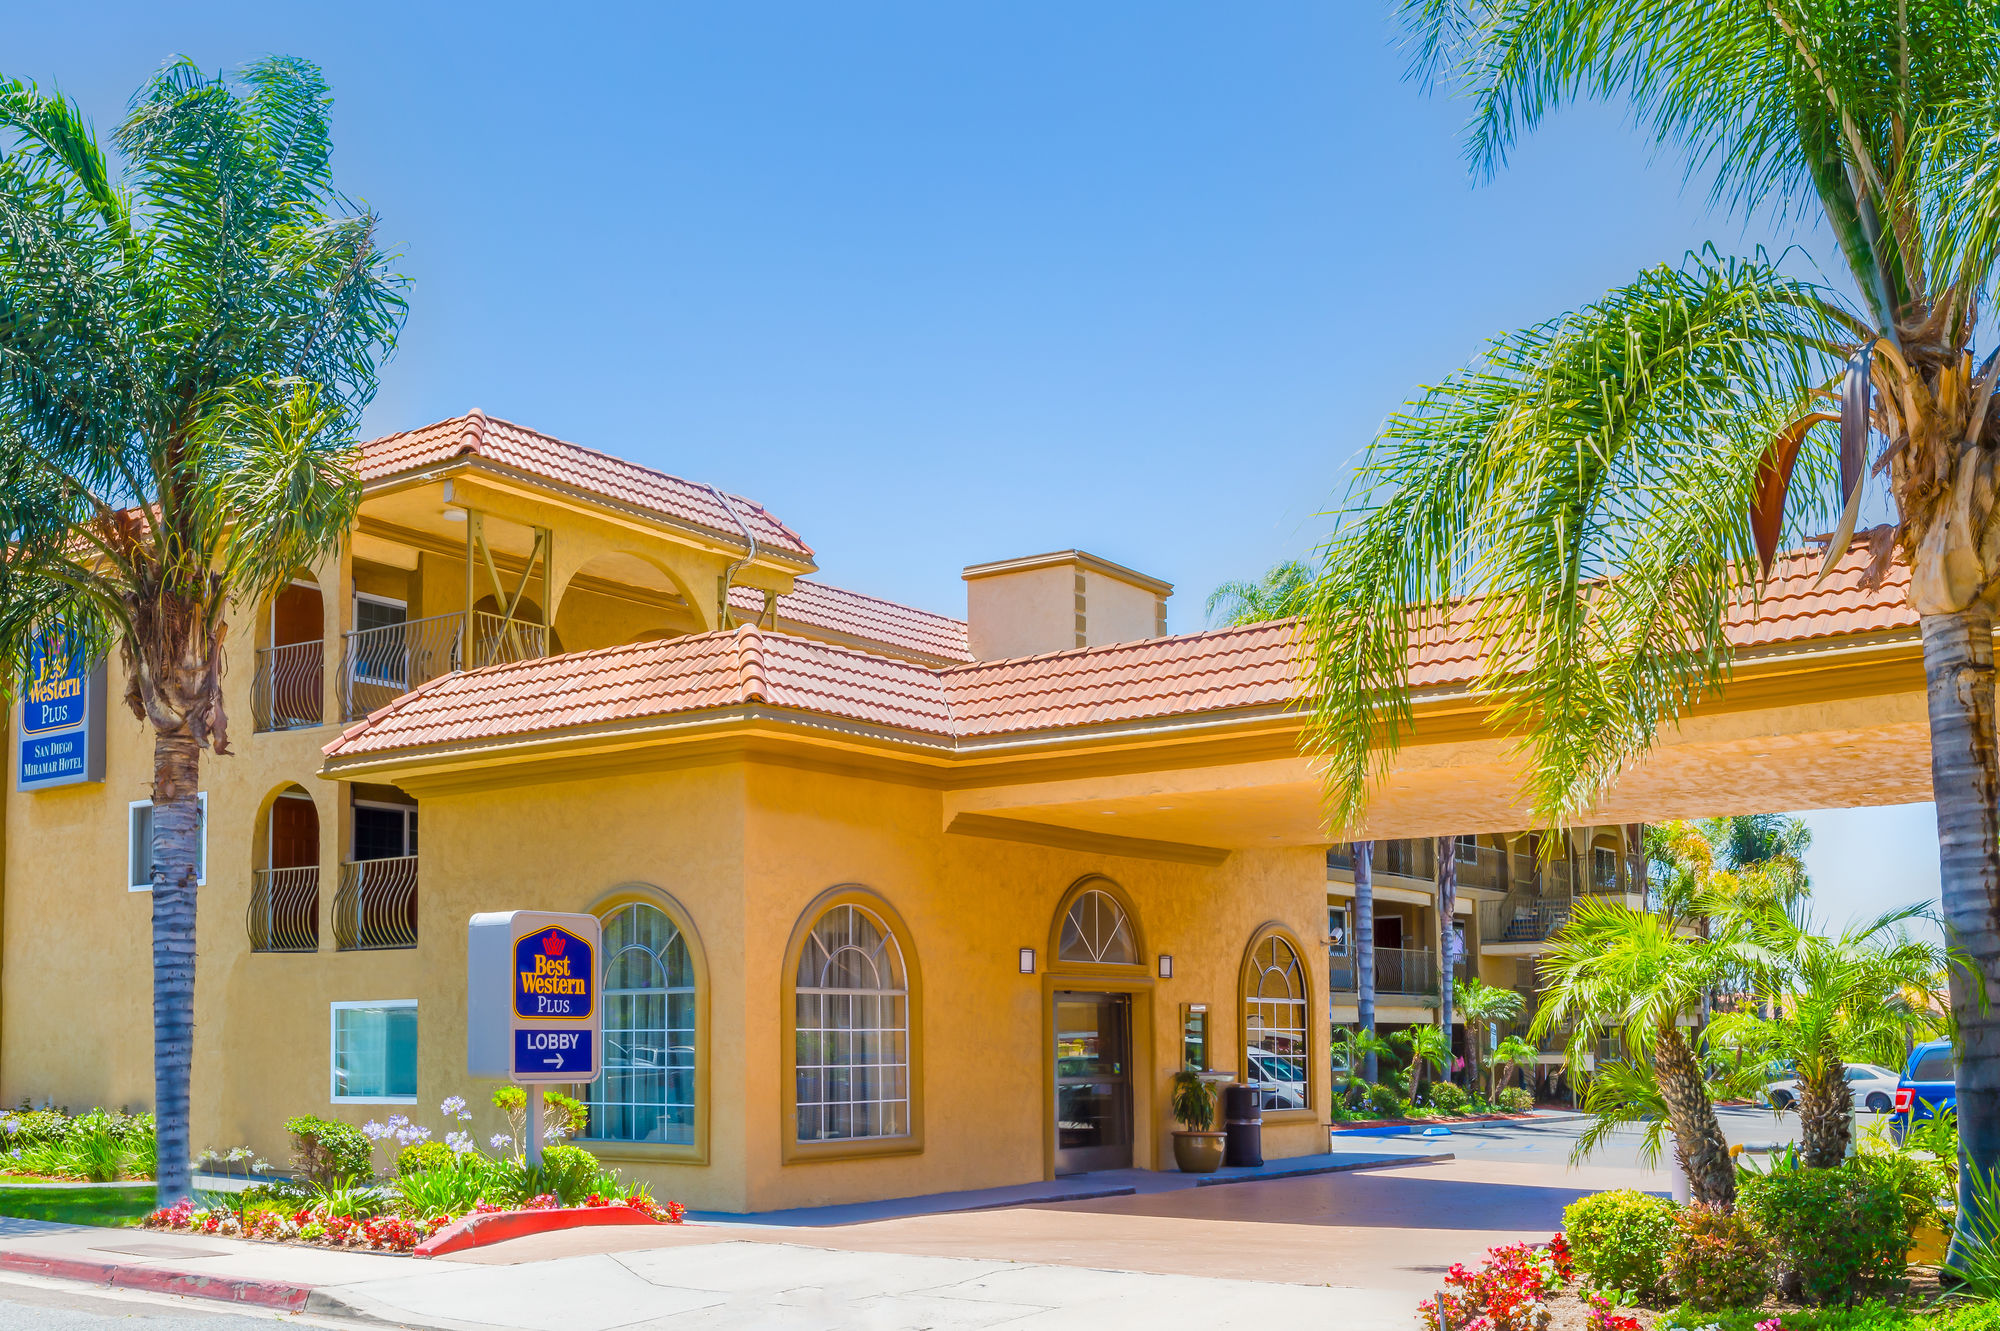 San Diego Free Hotel Discounts and Travel Coupons for San Diego Hotels, Rental Cars, Amusement Parks, Restaurants, Shopping, Nightlife, Activities and More! San Diego Deals, Discount Coupons, Promotion Codes. Hotels San Diego. Discounts and Special Offers for Hotels and Resorts in San .